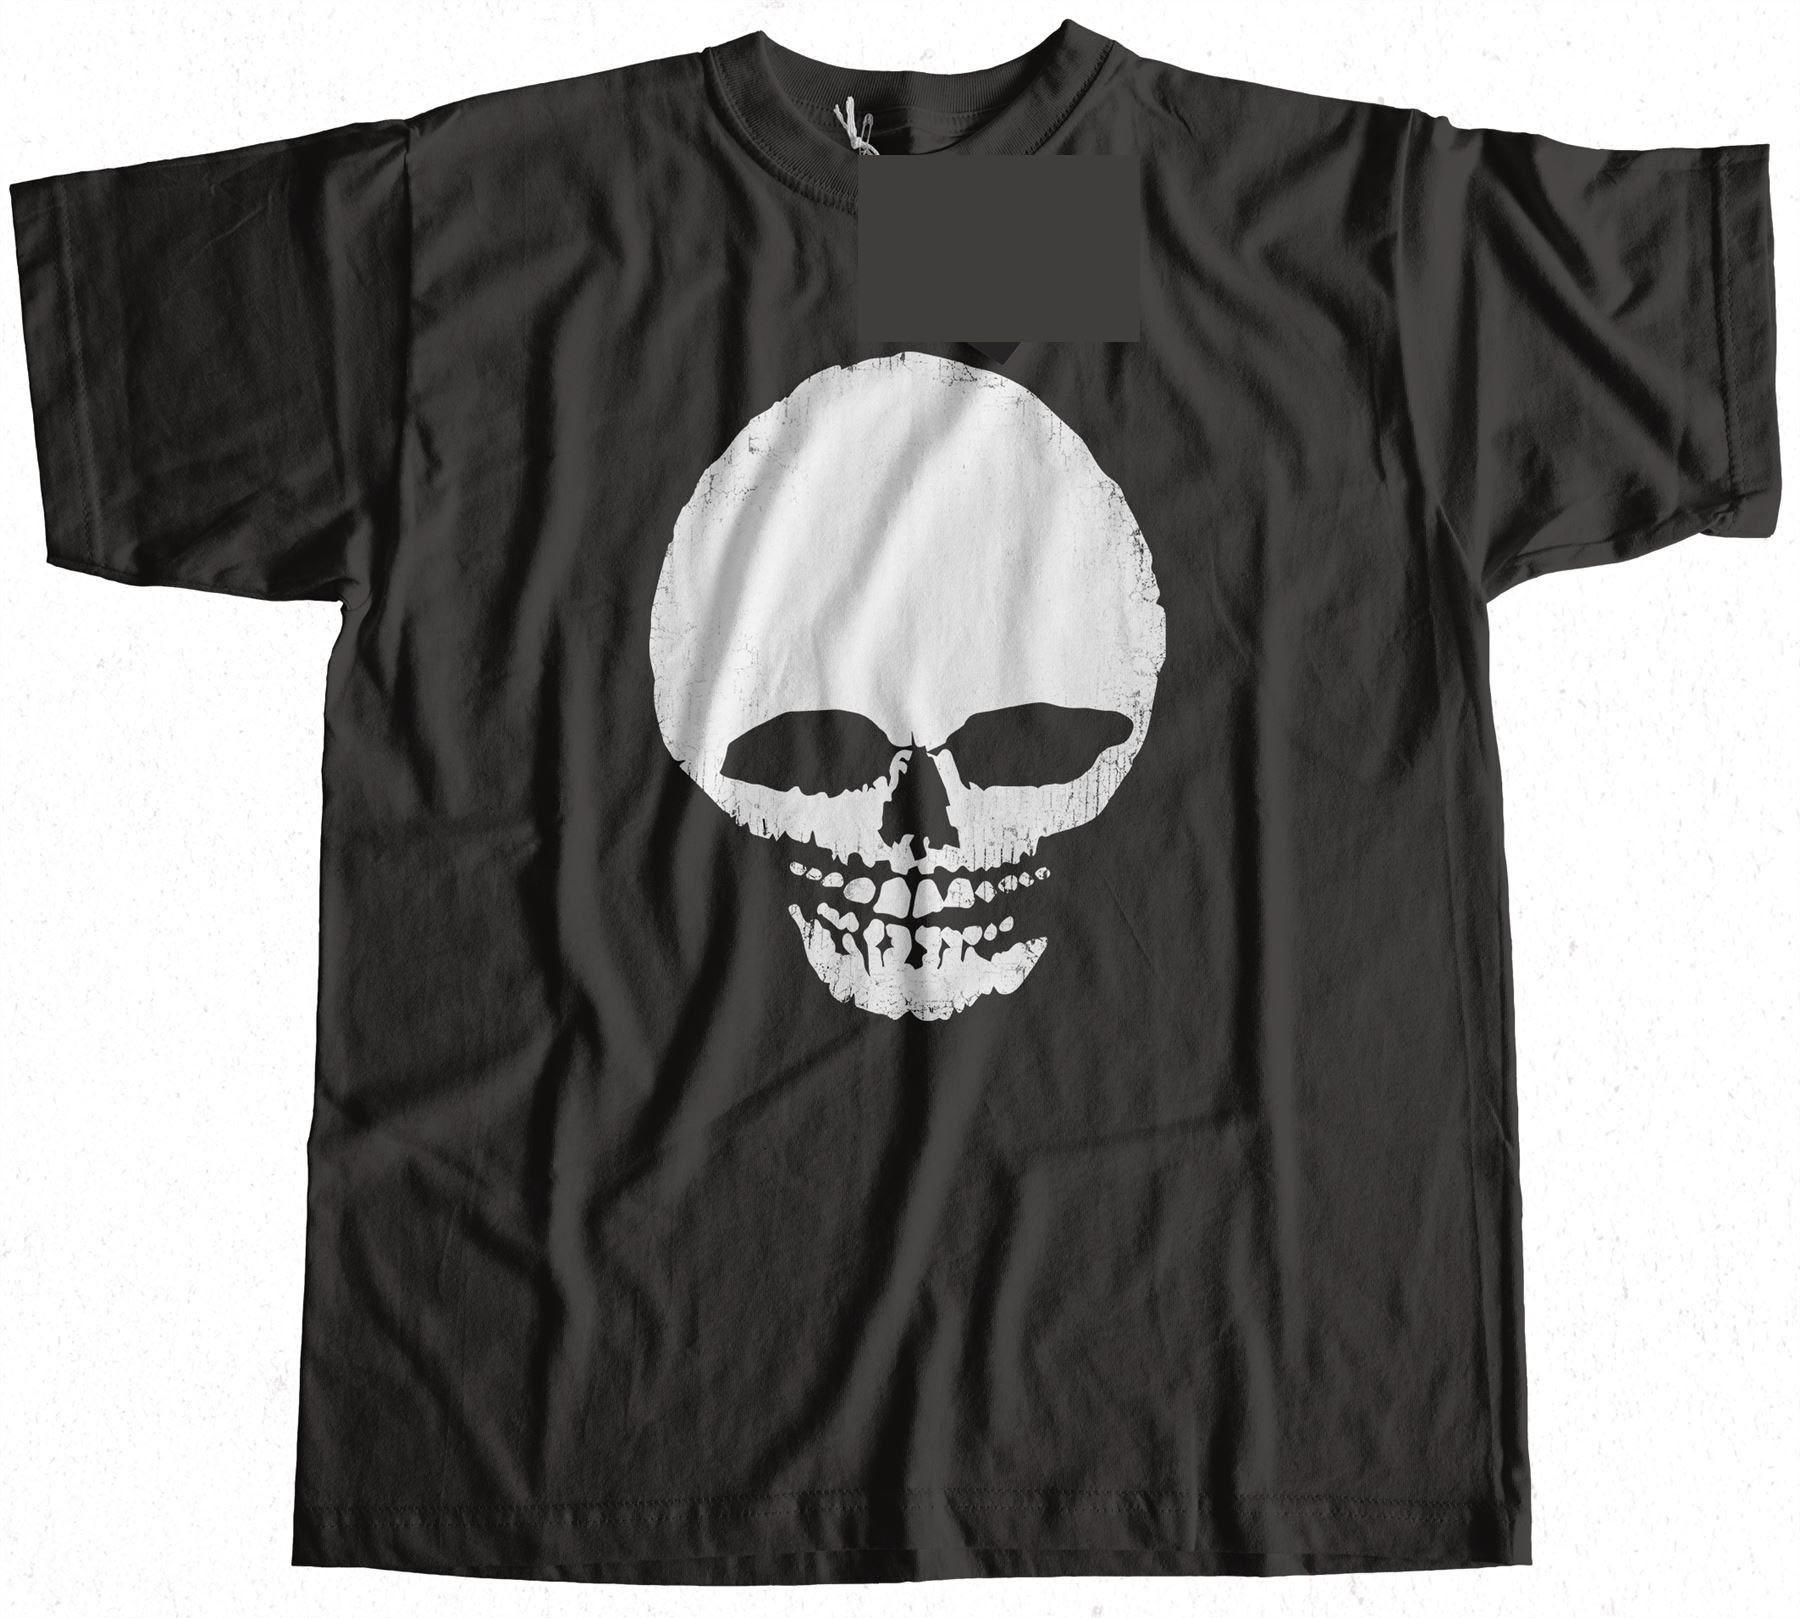 Skull As Worn By Debbie Harry T-Shirt 100% Premium Cotton New Funny Brand Clothing Top Tee Adult T Shirt S-3Xl Normal